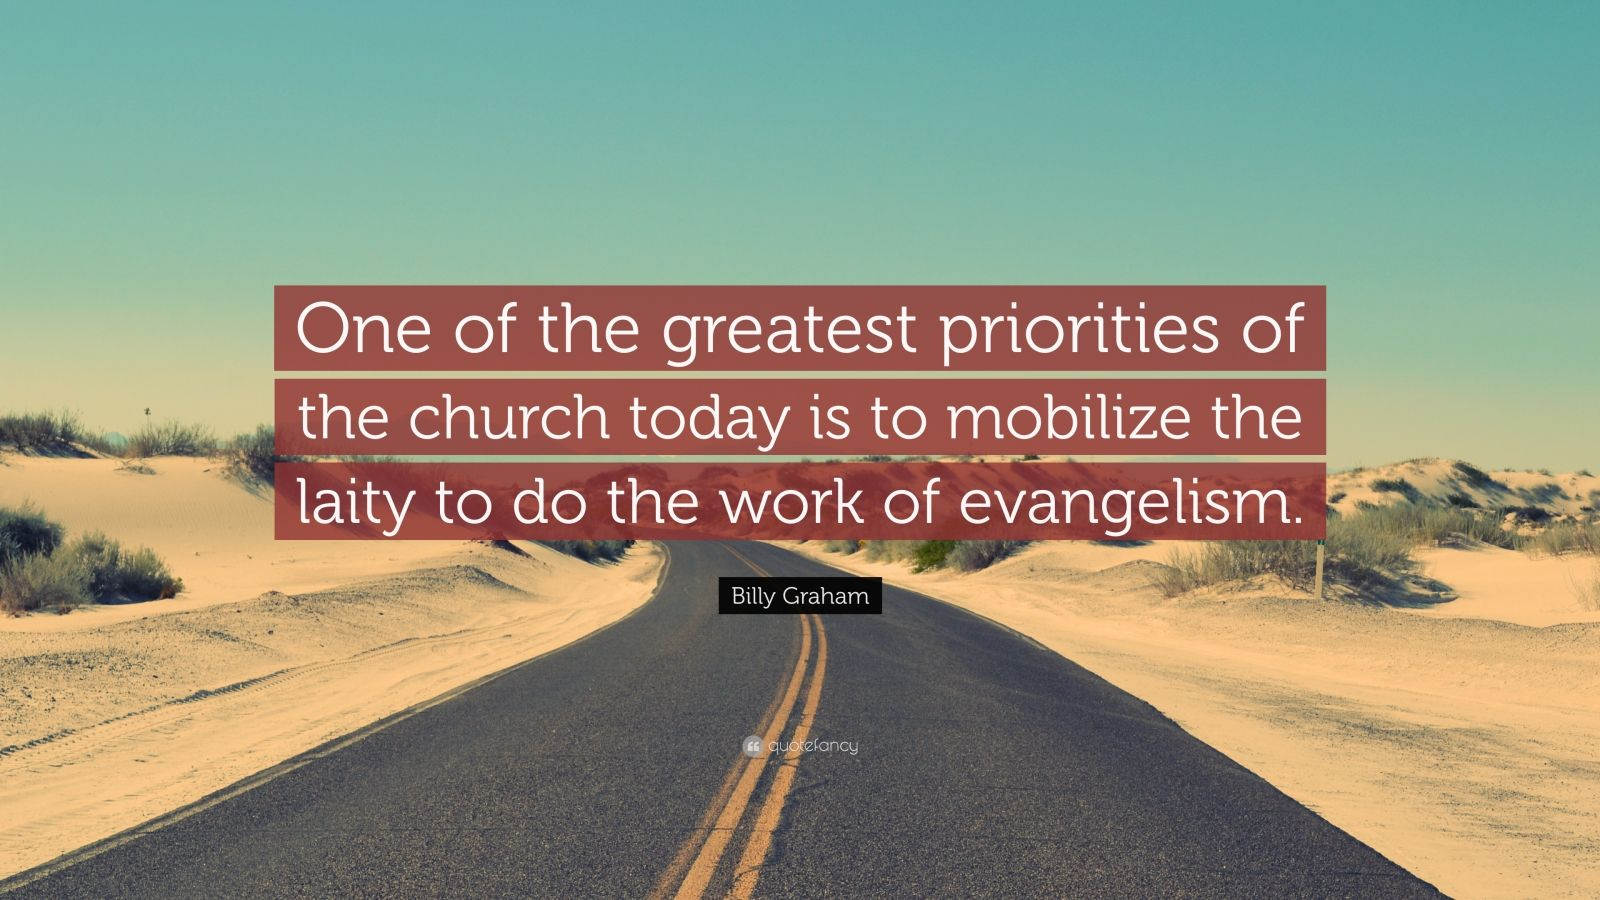 """Billy Graham Quote: """"One of the greatest priorities of the church today is to mobilize the laity to do the work of evangelism."""""""